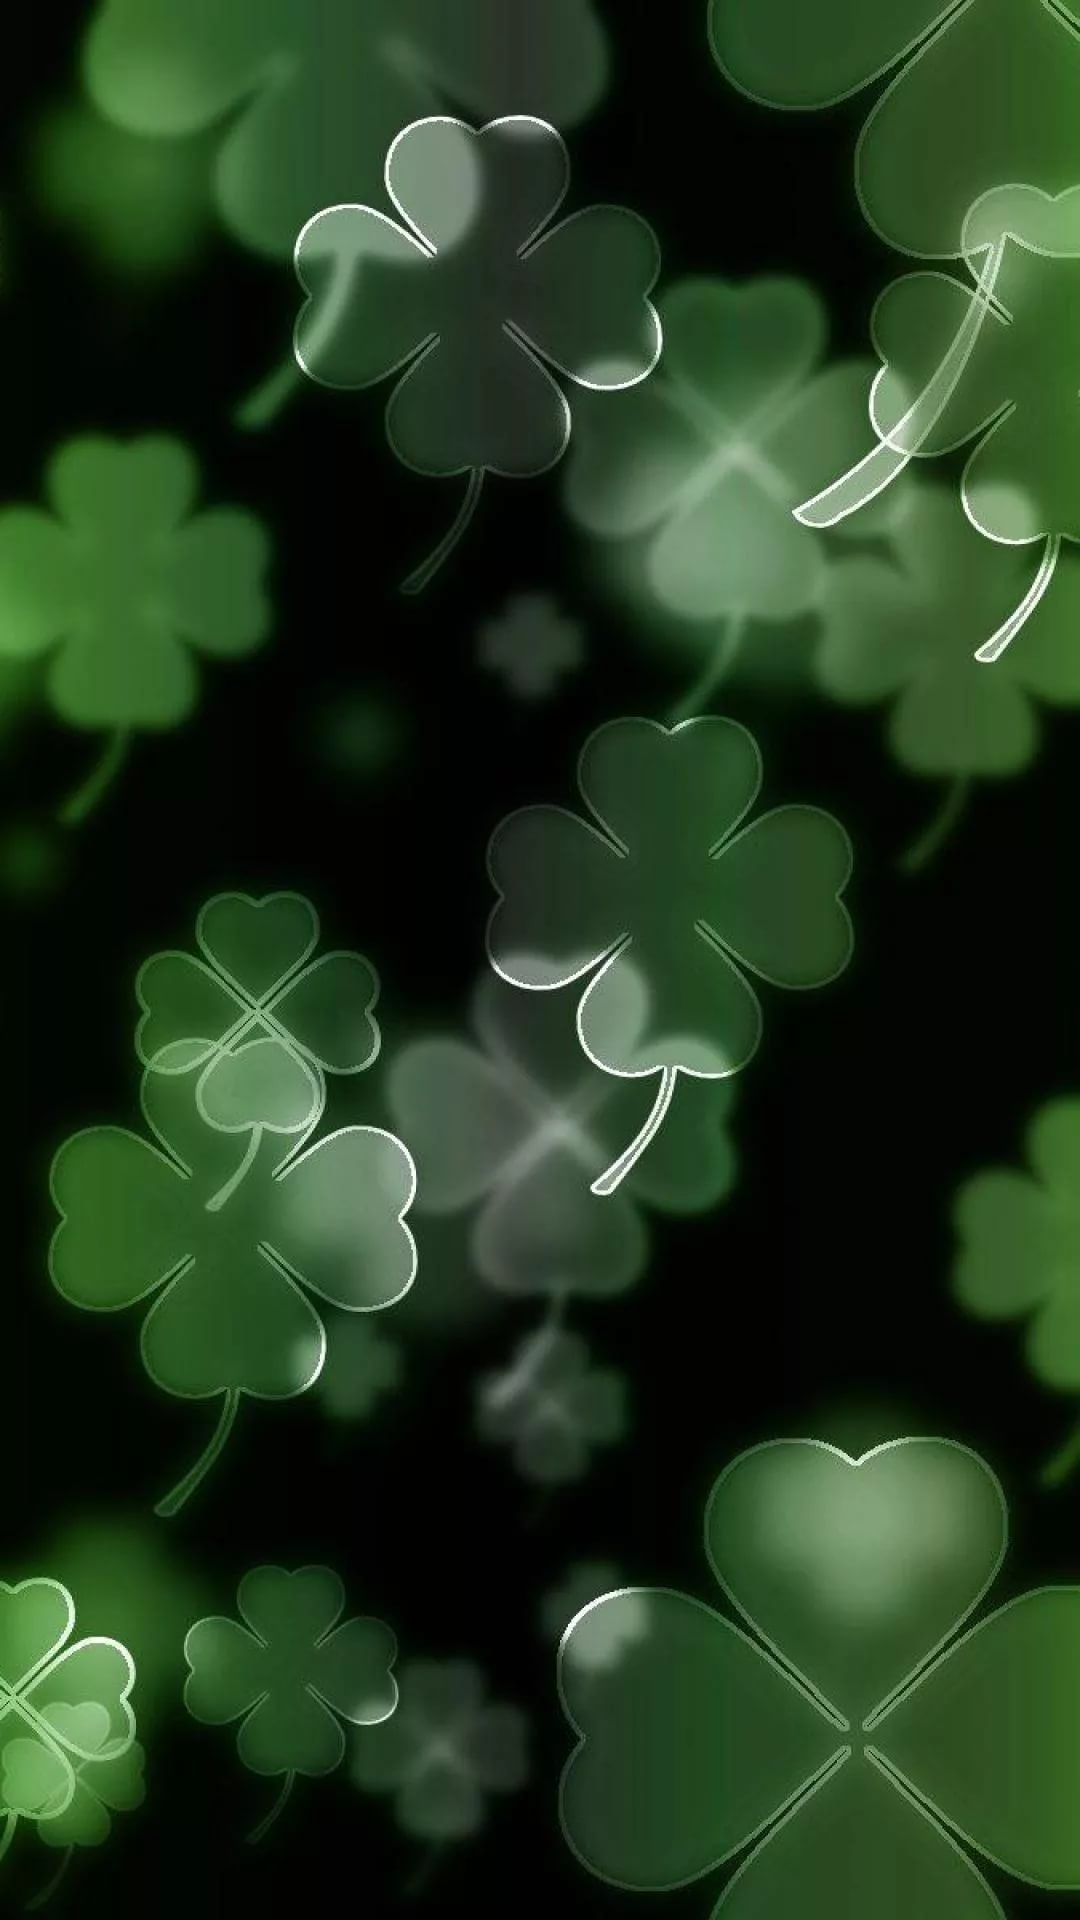 Irish iPhone 6 wallpaper